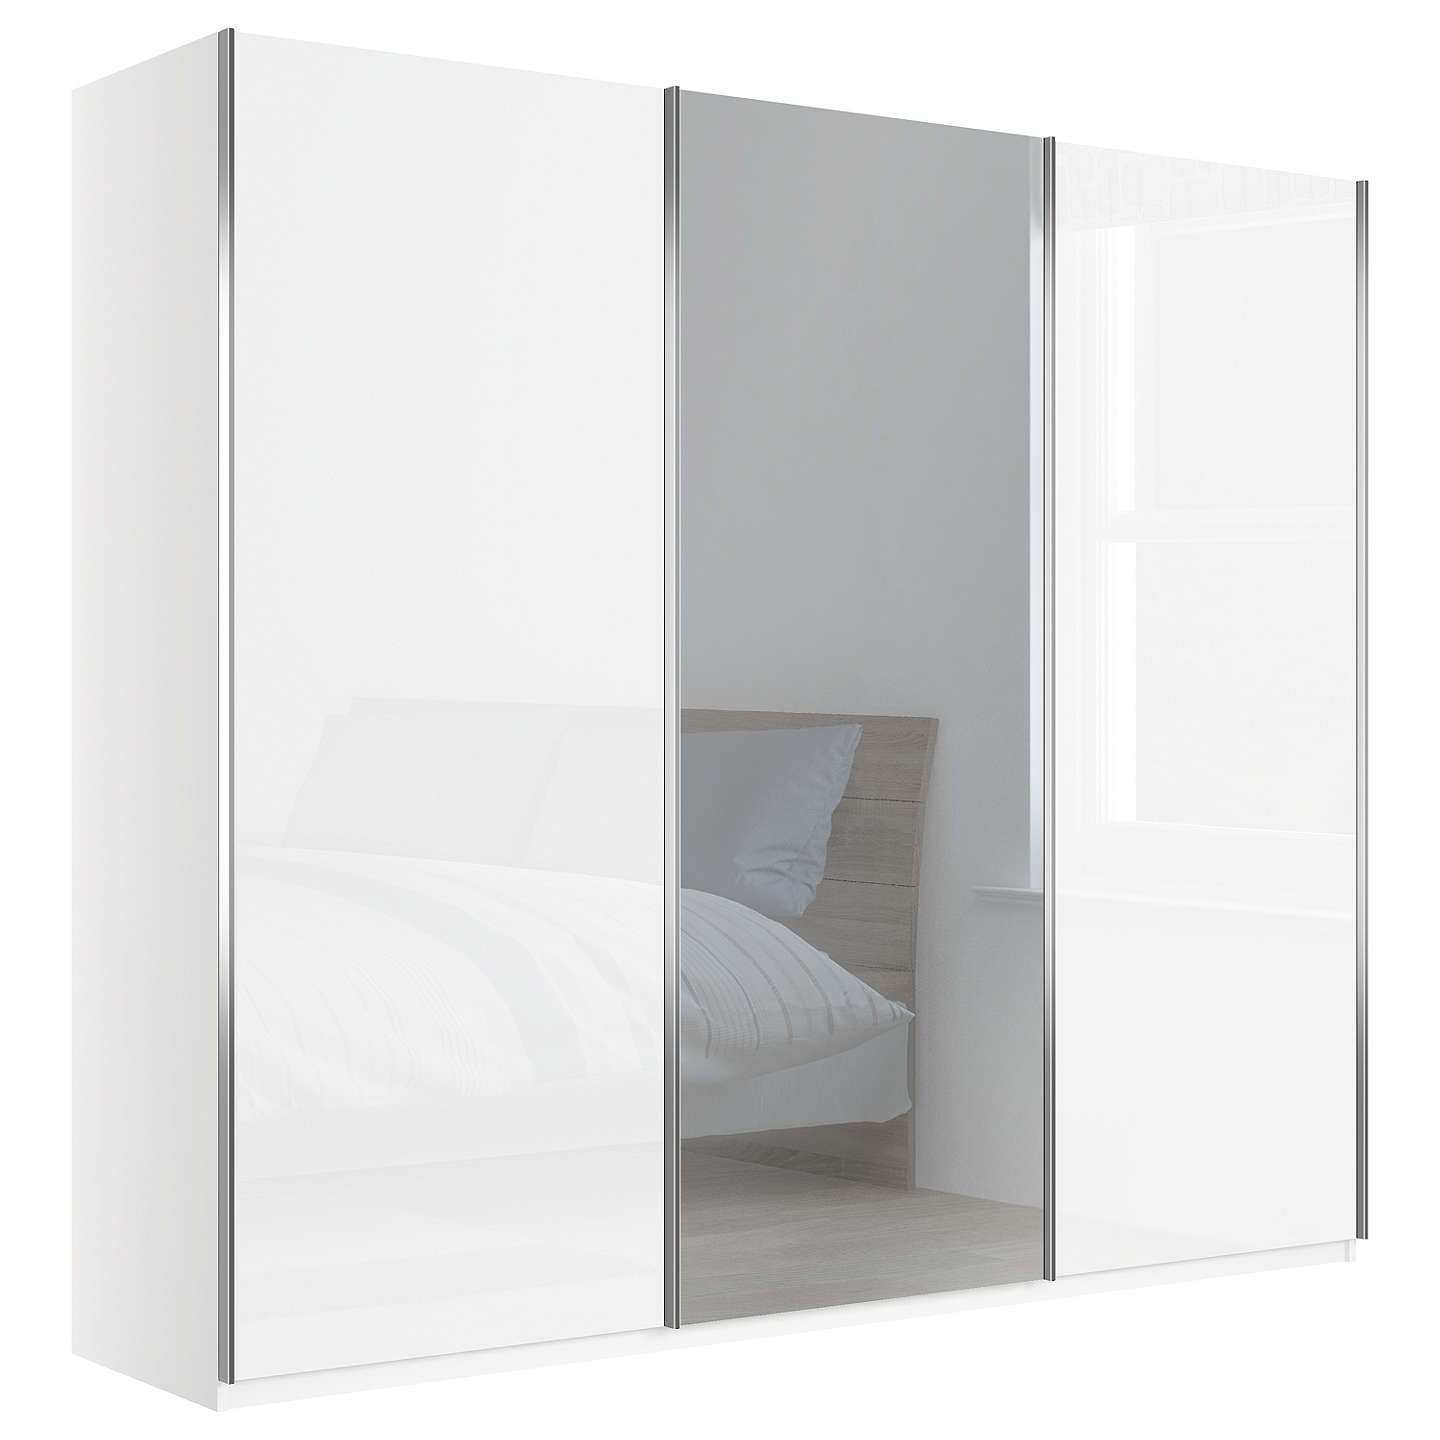 White Impact Plus Sliding Doors Smm9080wmc 64 1000y Wardrobe